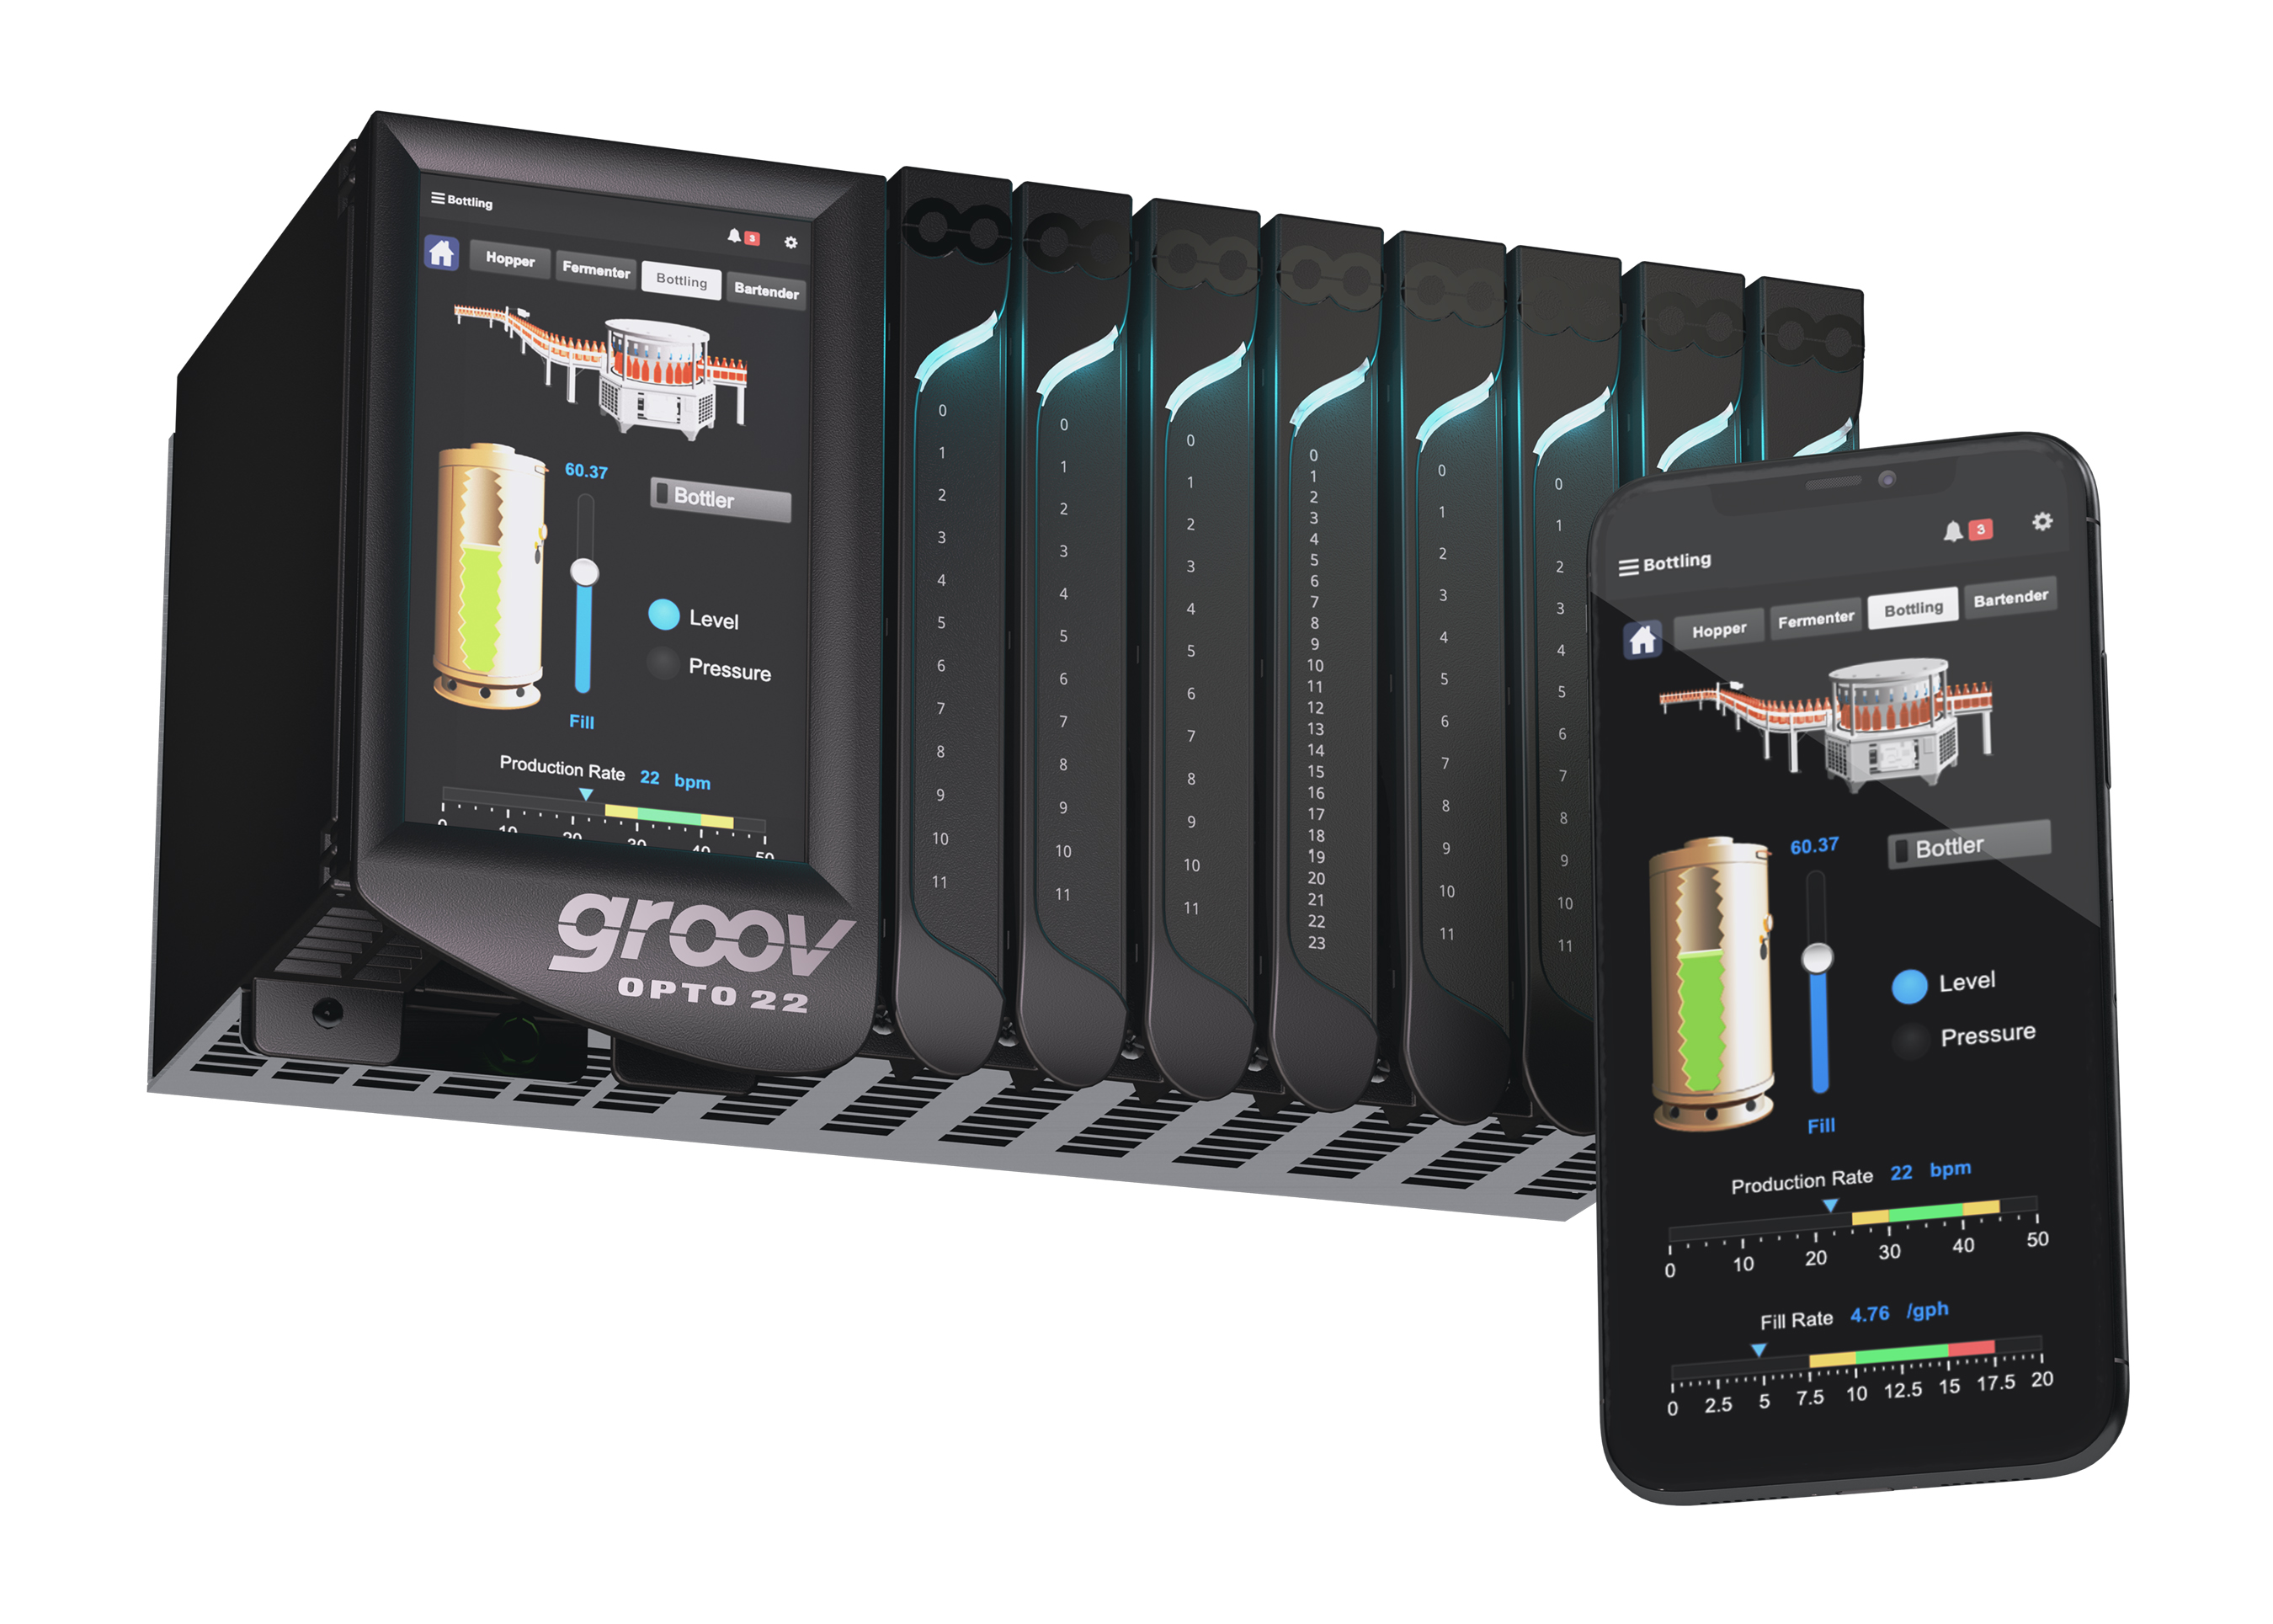 Opto 22 announces firmware update 1.4.1 for groov EPIC Edge Programmable Industrial Controller